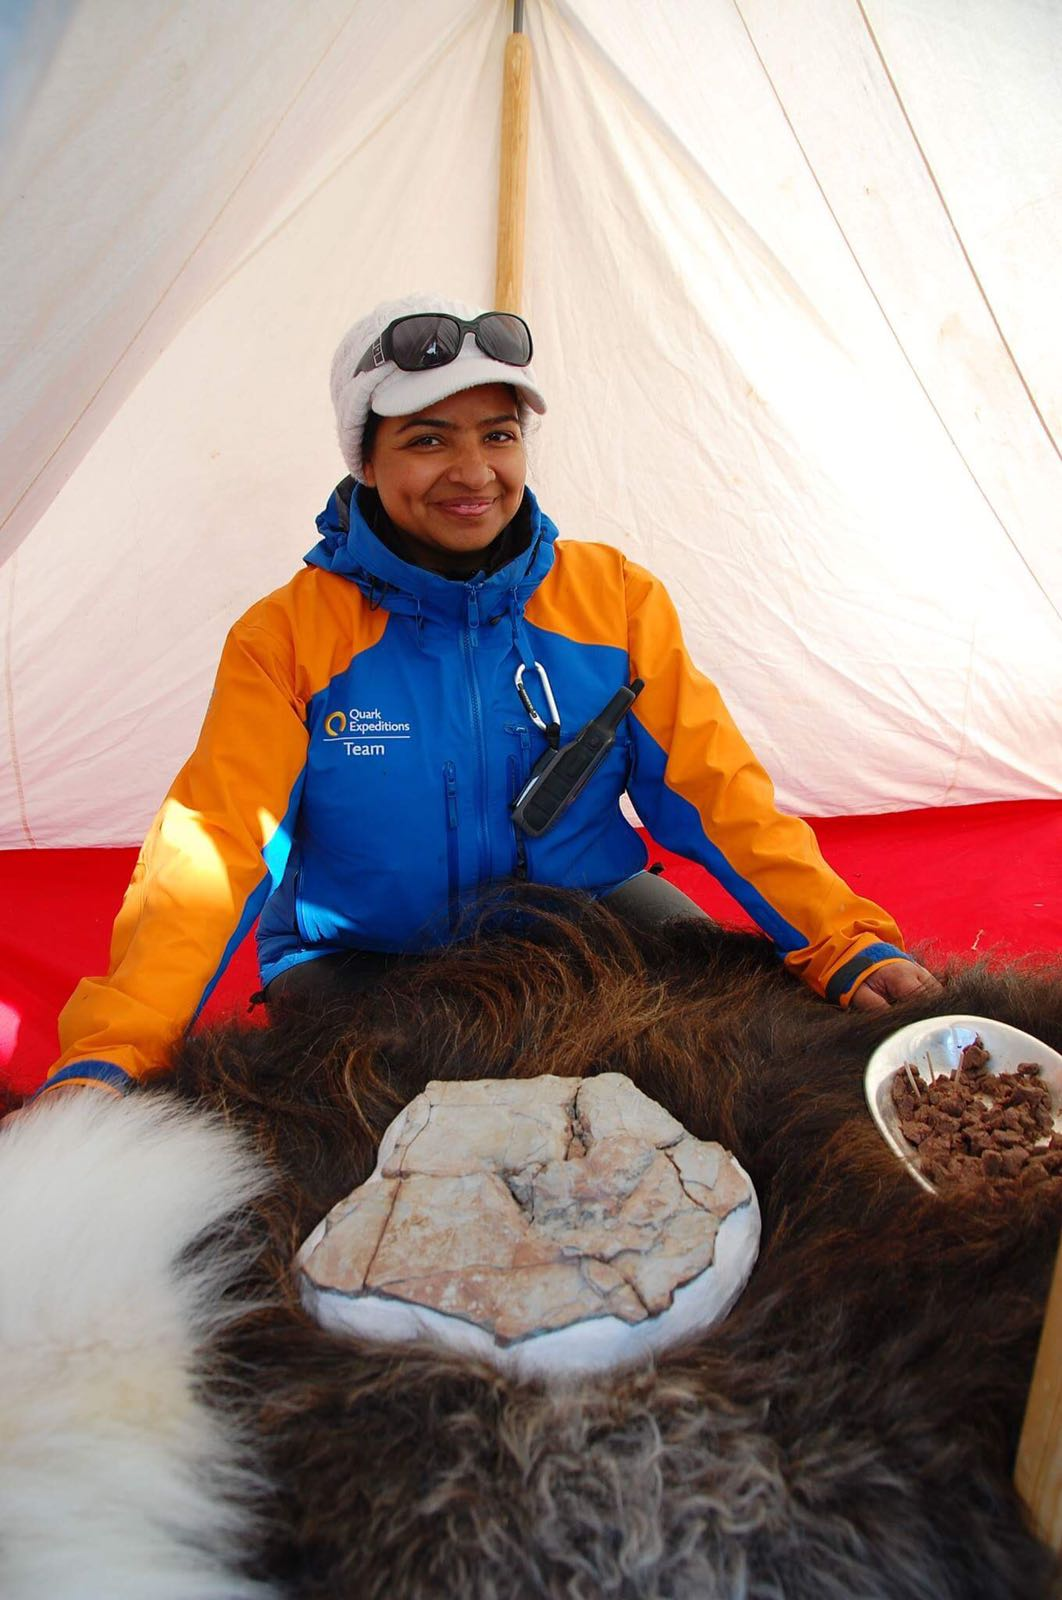 Spend more time exploring Greenland's history and culture on small ship expeditions.